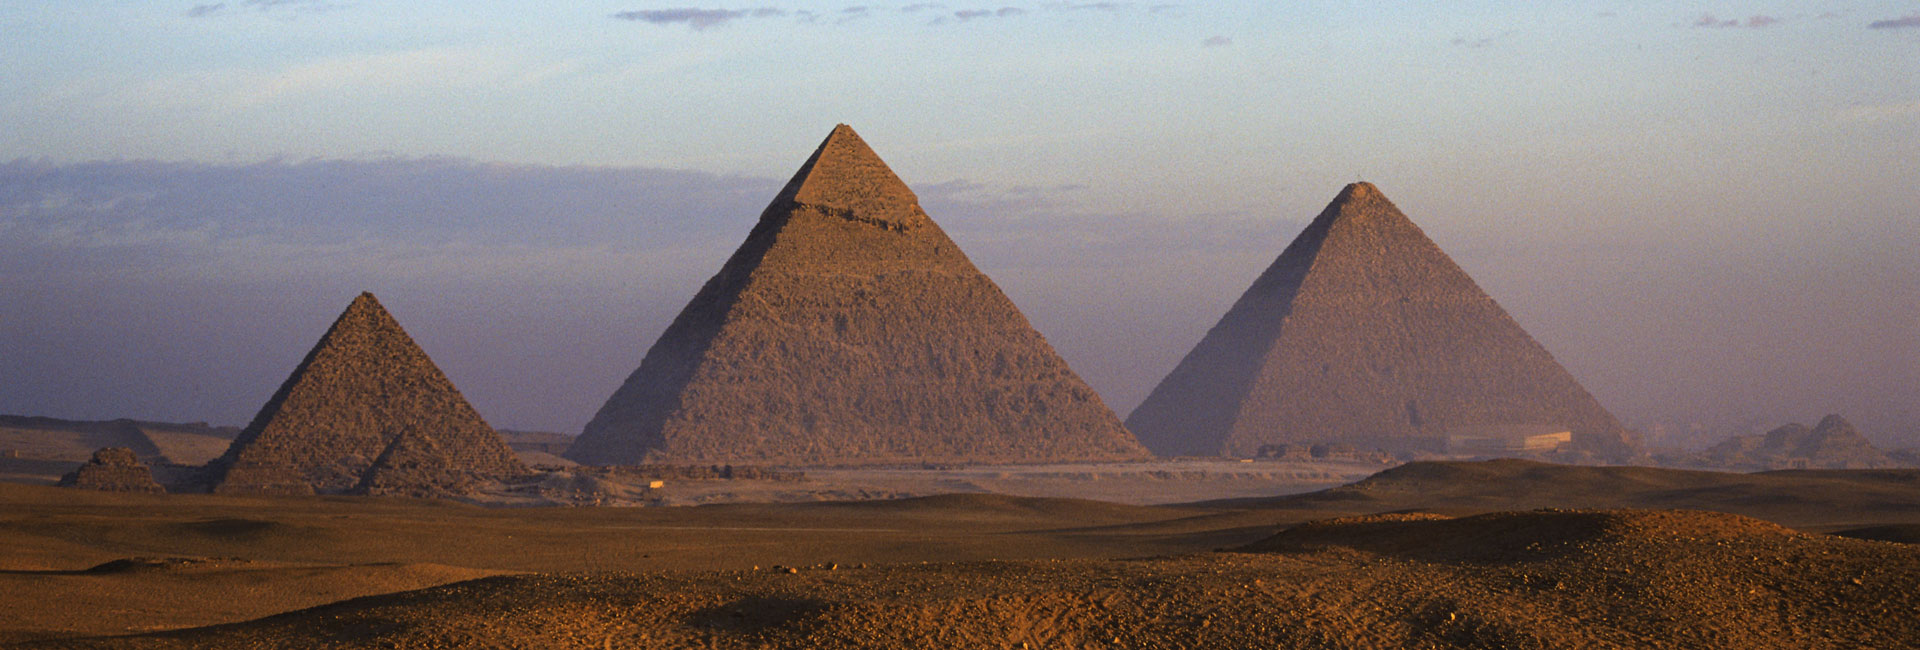 Cairo and Alexandria Tour Package